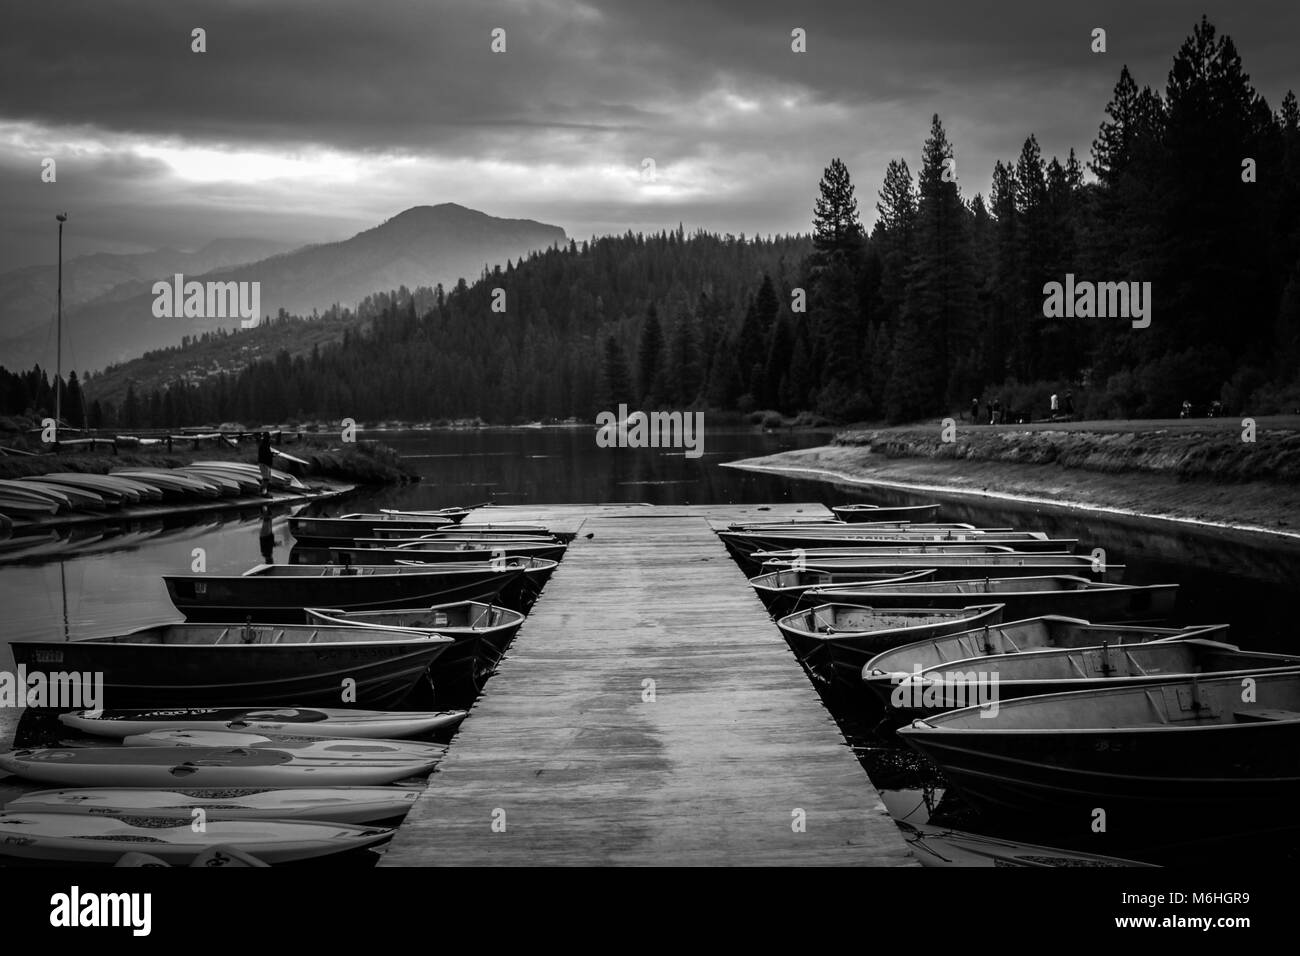 Black and White Ominous Dock - Stock Image